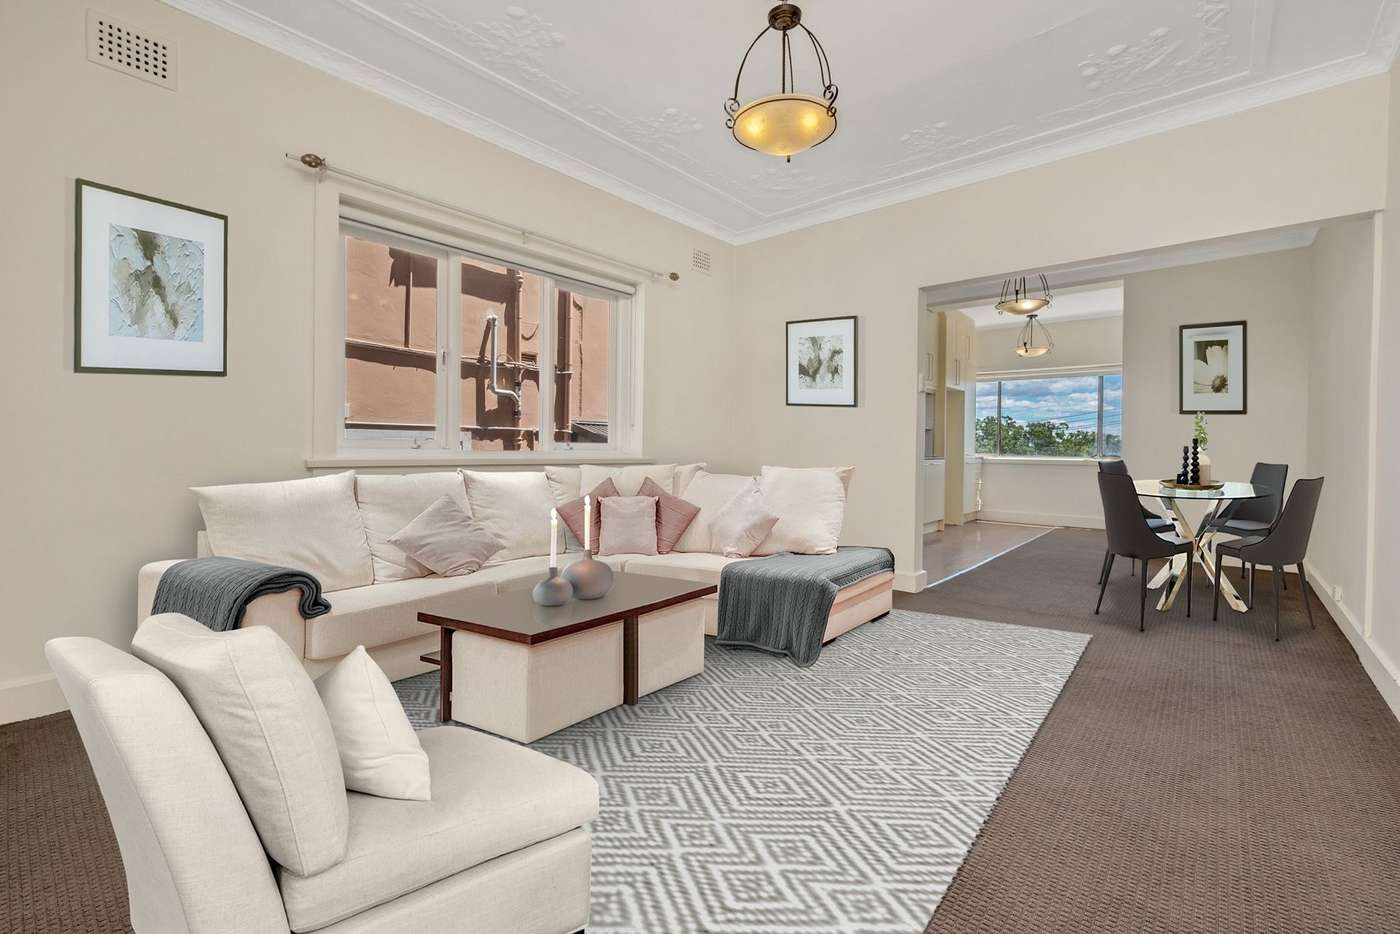 Main view of Homely apartment listing, 2/211 Edgecliff Road, Woollahra NSW 2025